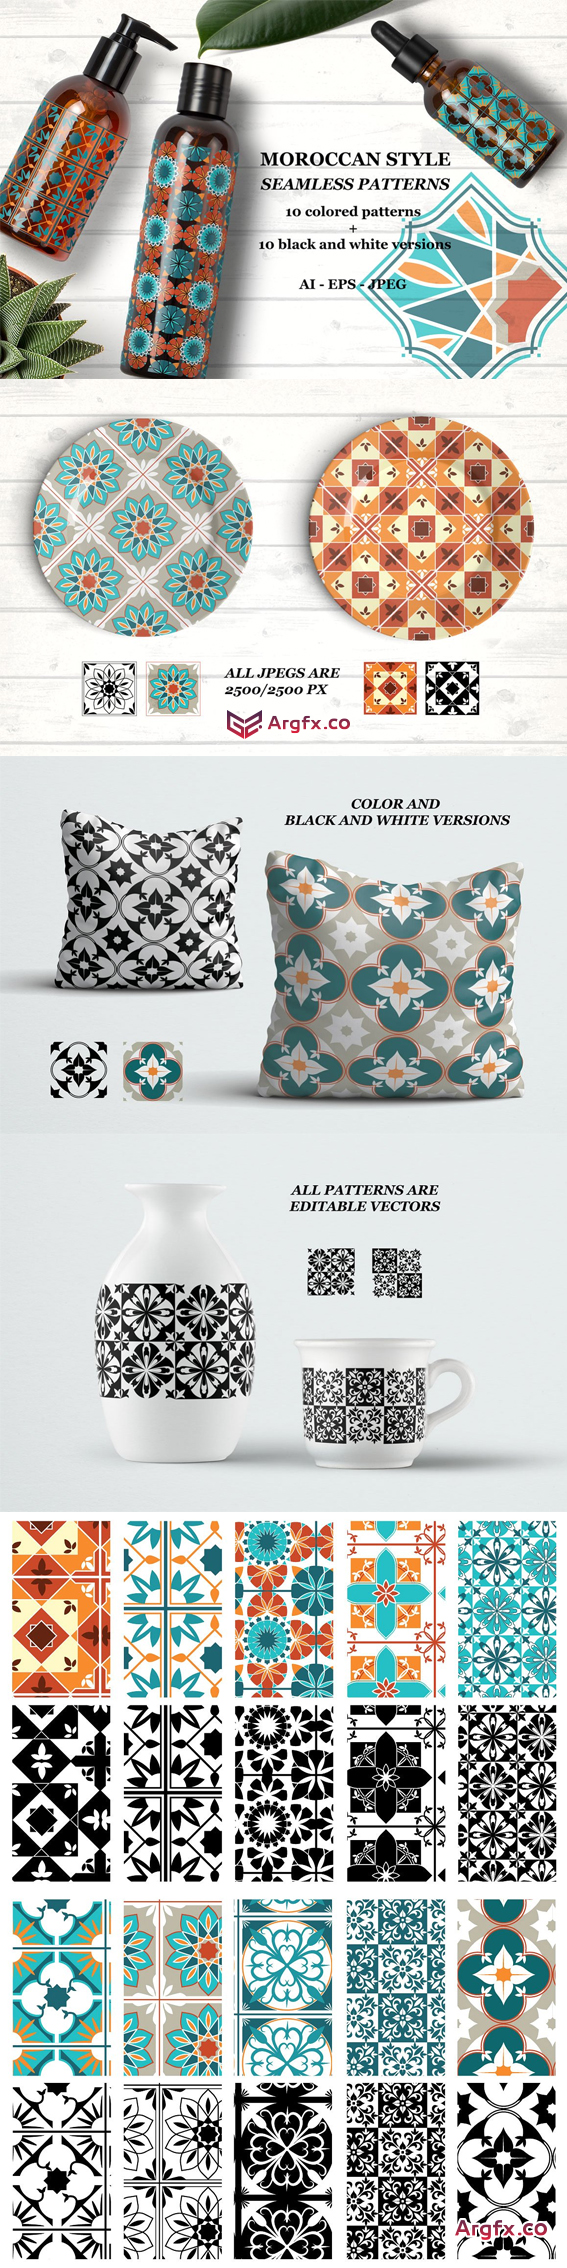 CM - Moroccan style patterns 1810822